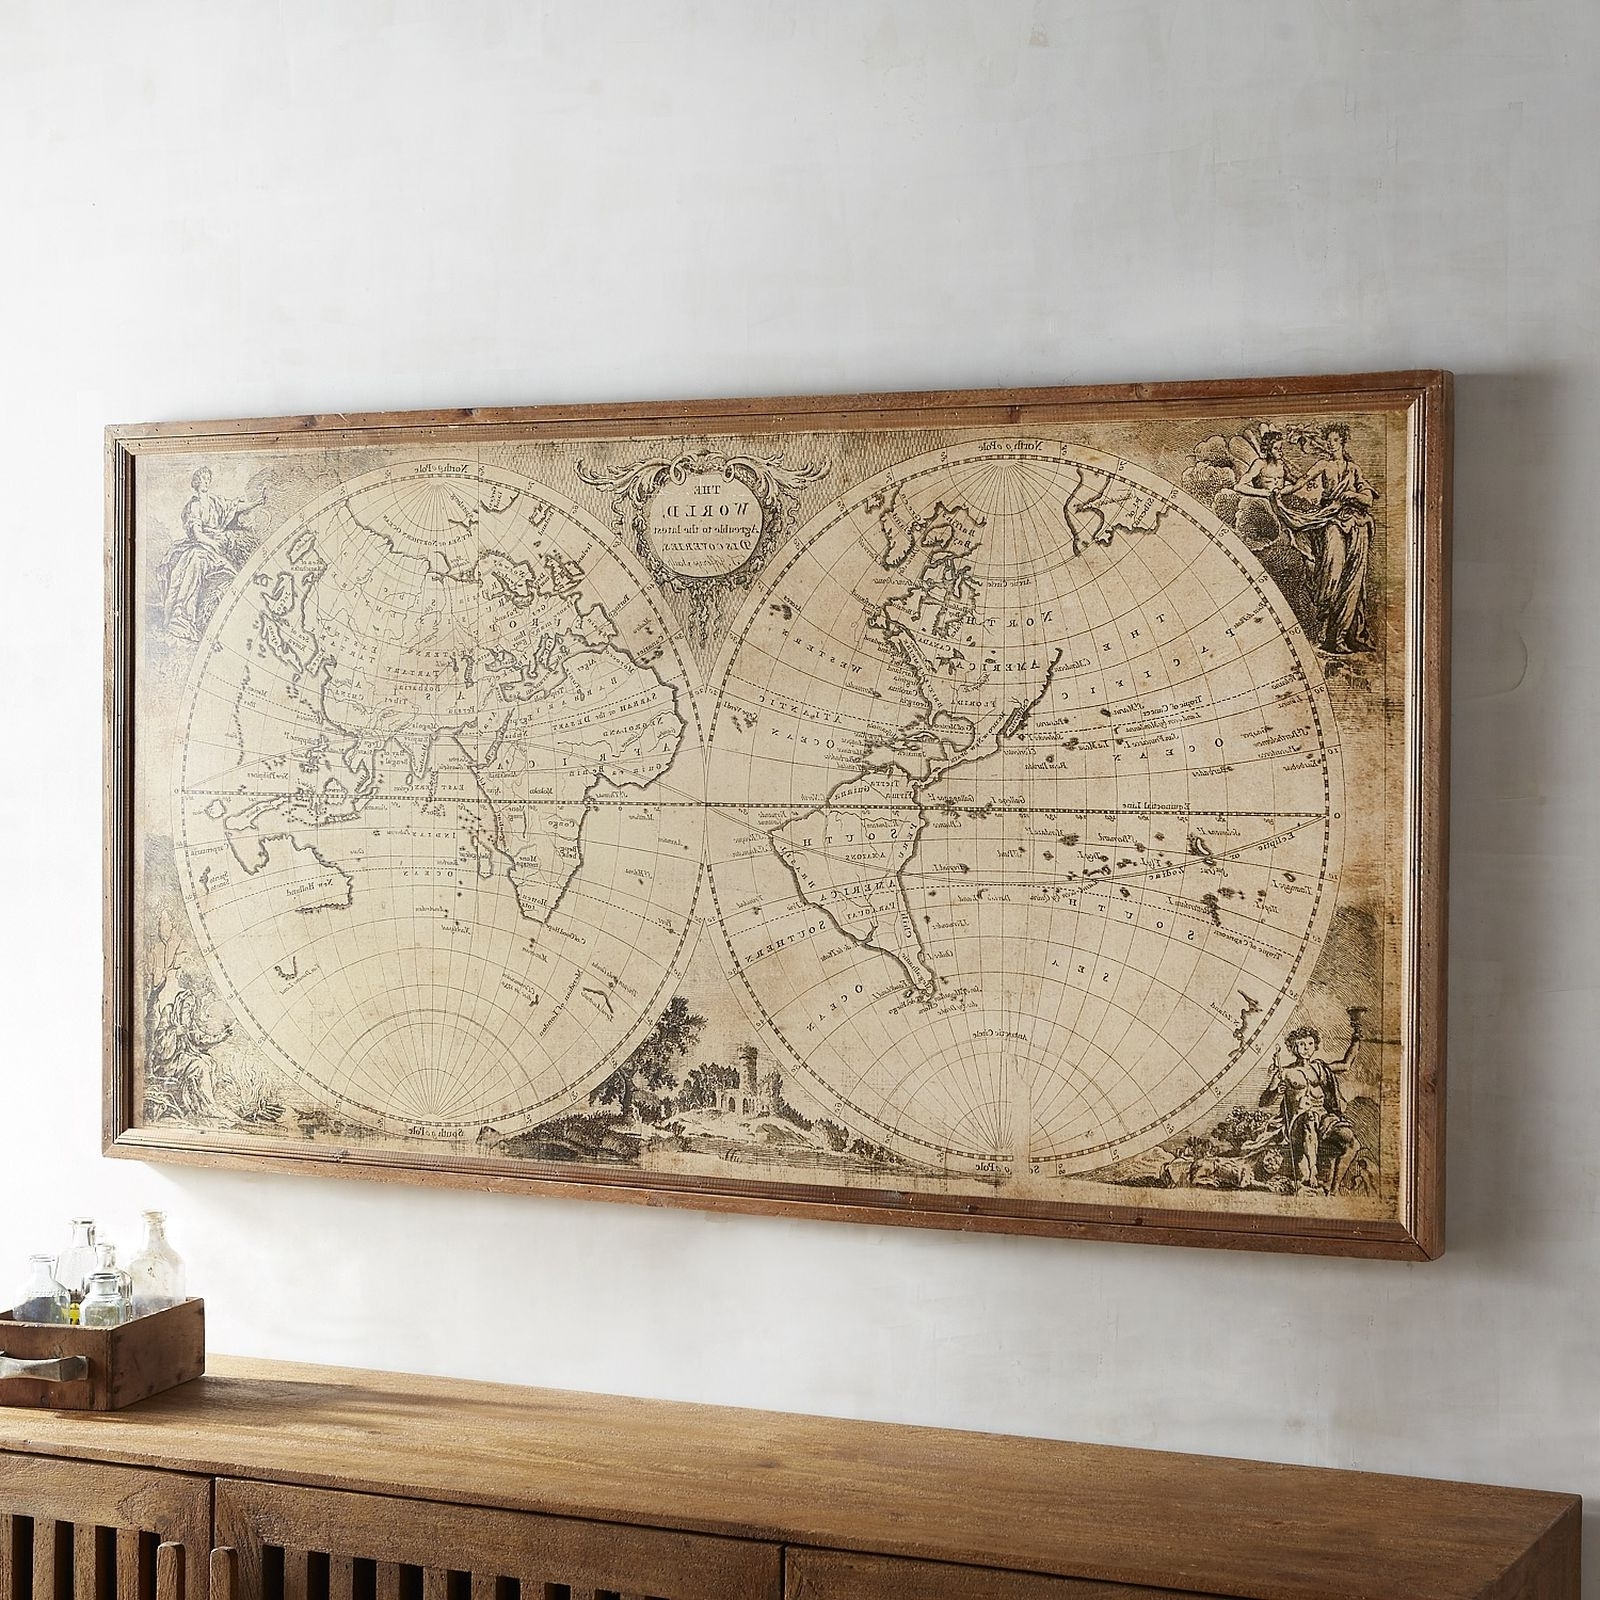 Preferred Wall Art Amazing Framed World Maps Enchanting And Large Map Regarding Extra Large Framed Wall Art (View 8 of 15)